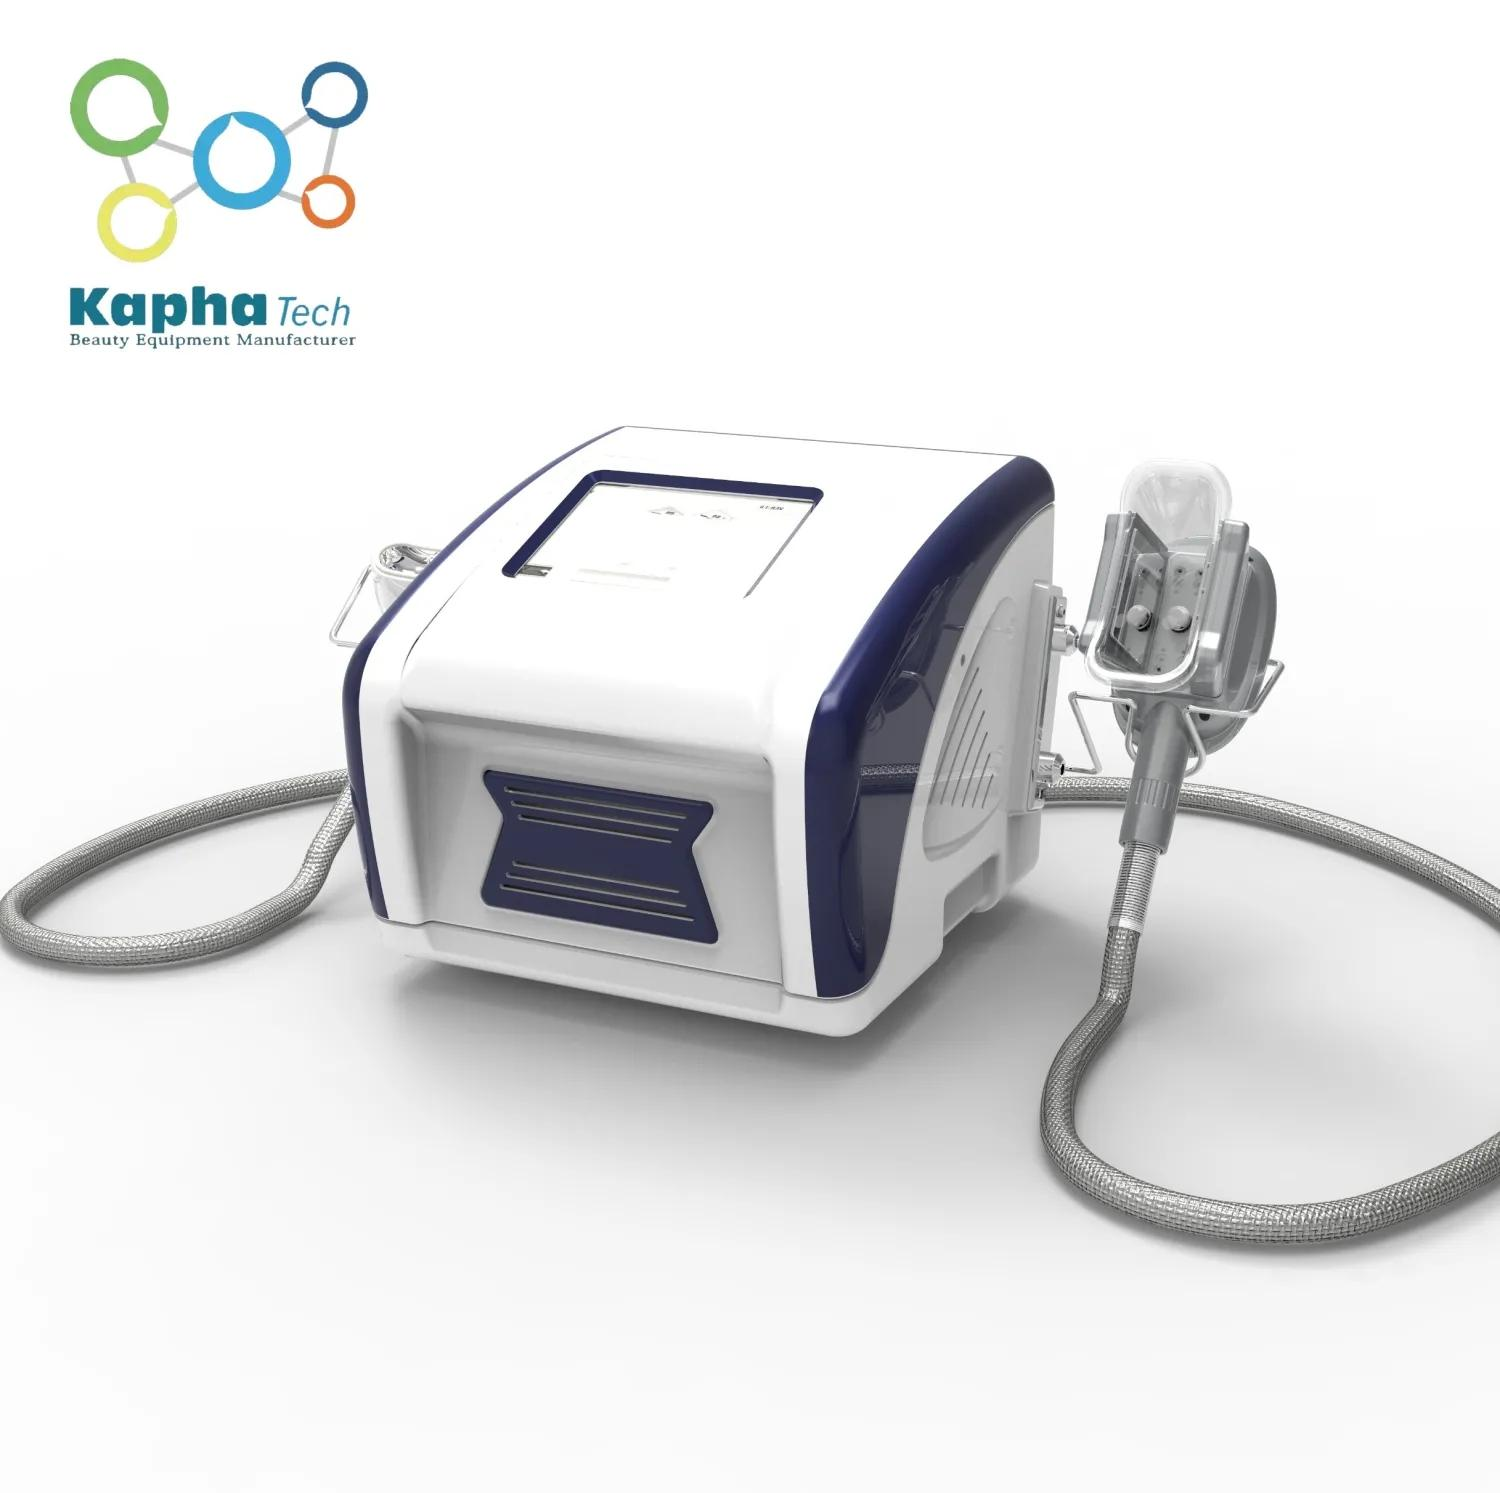 Portable Cryolipolysis Fat Freezing Lipo Laser Slimming Machine Vacuum Therapy for body fat reduction and weight loss